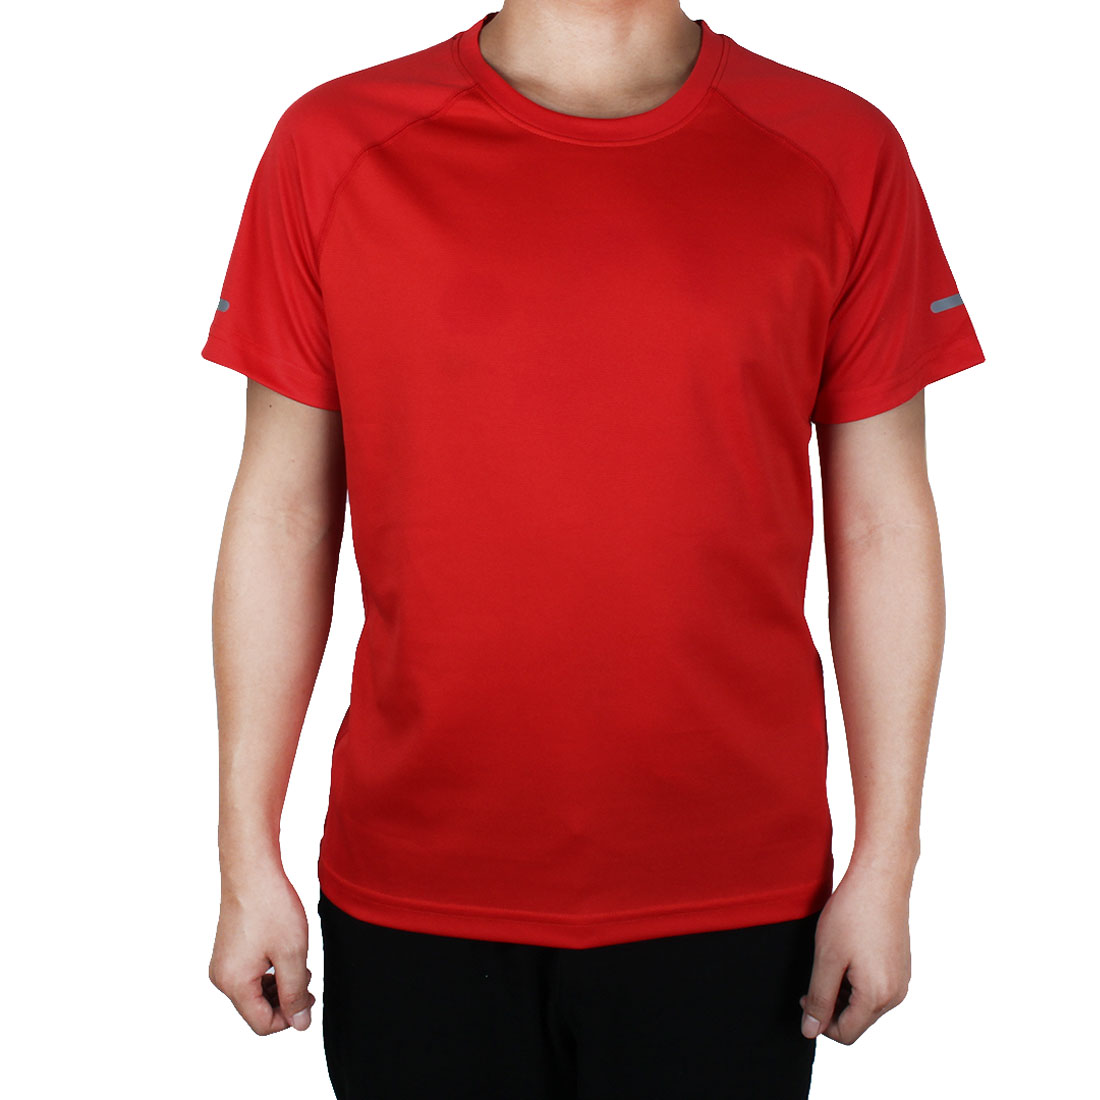 Short Sleeve Clothes Reflective Stretchy Basketball Soccer Sports T-shirt Red M